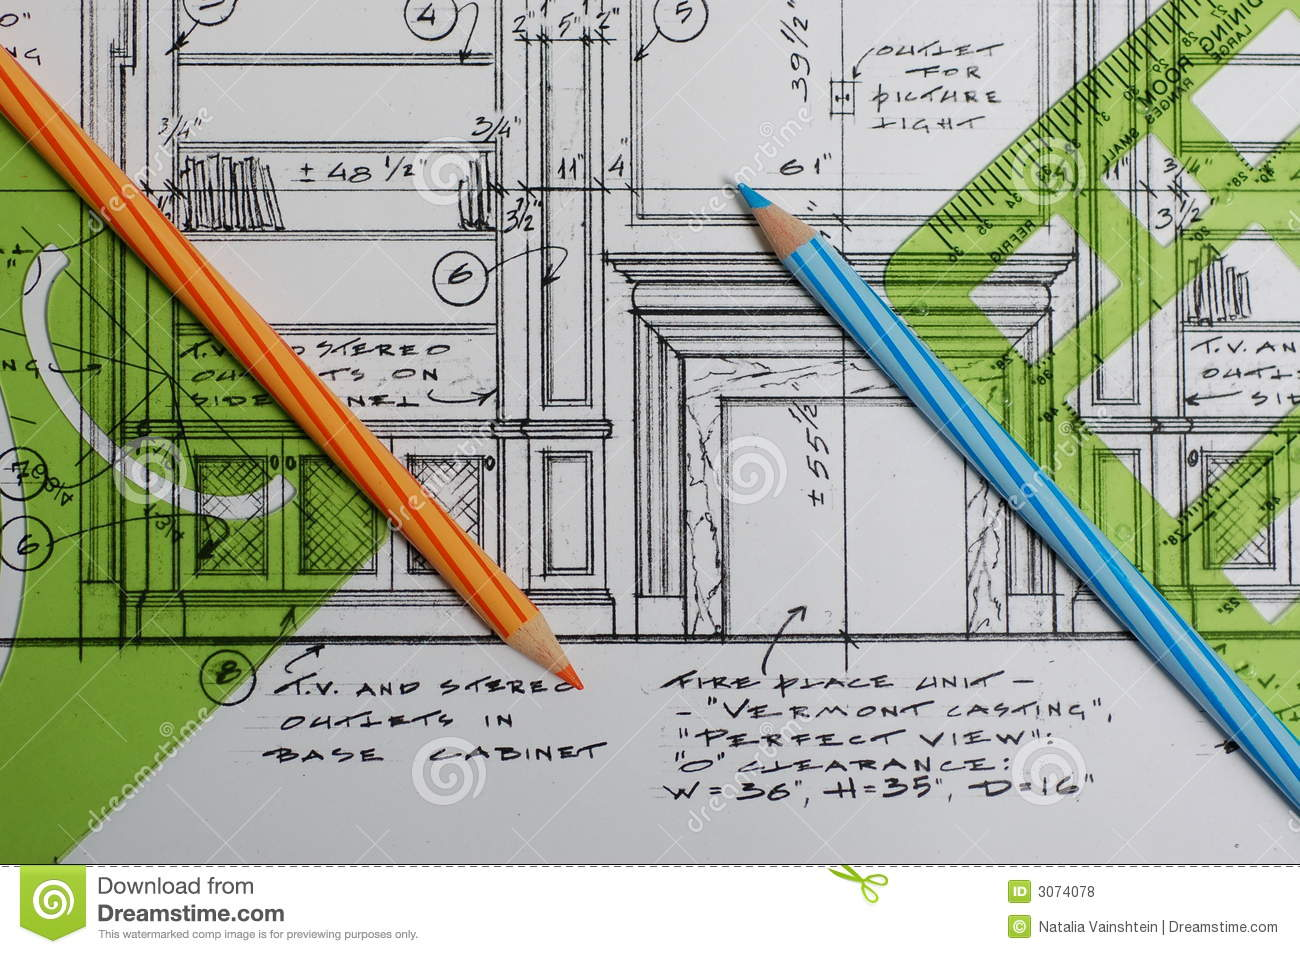 interior design drawings - Interior Design Drawings